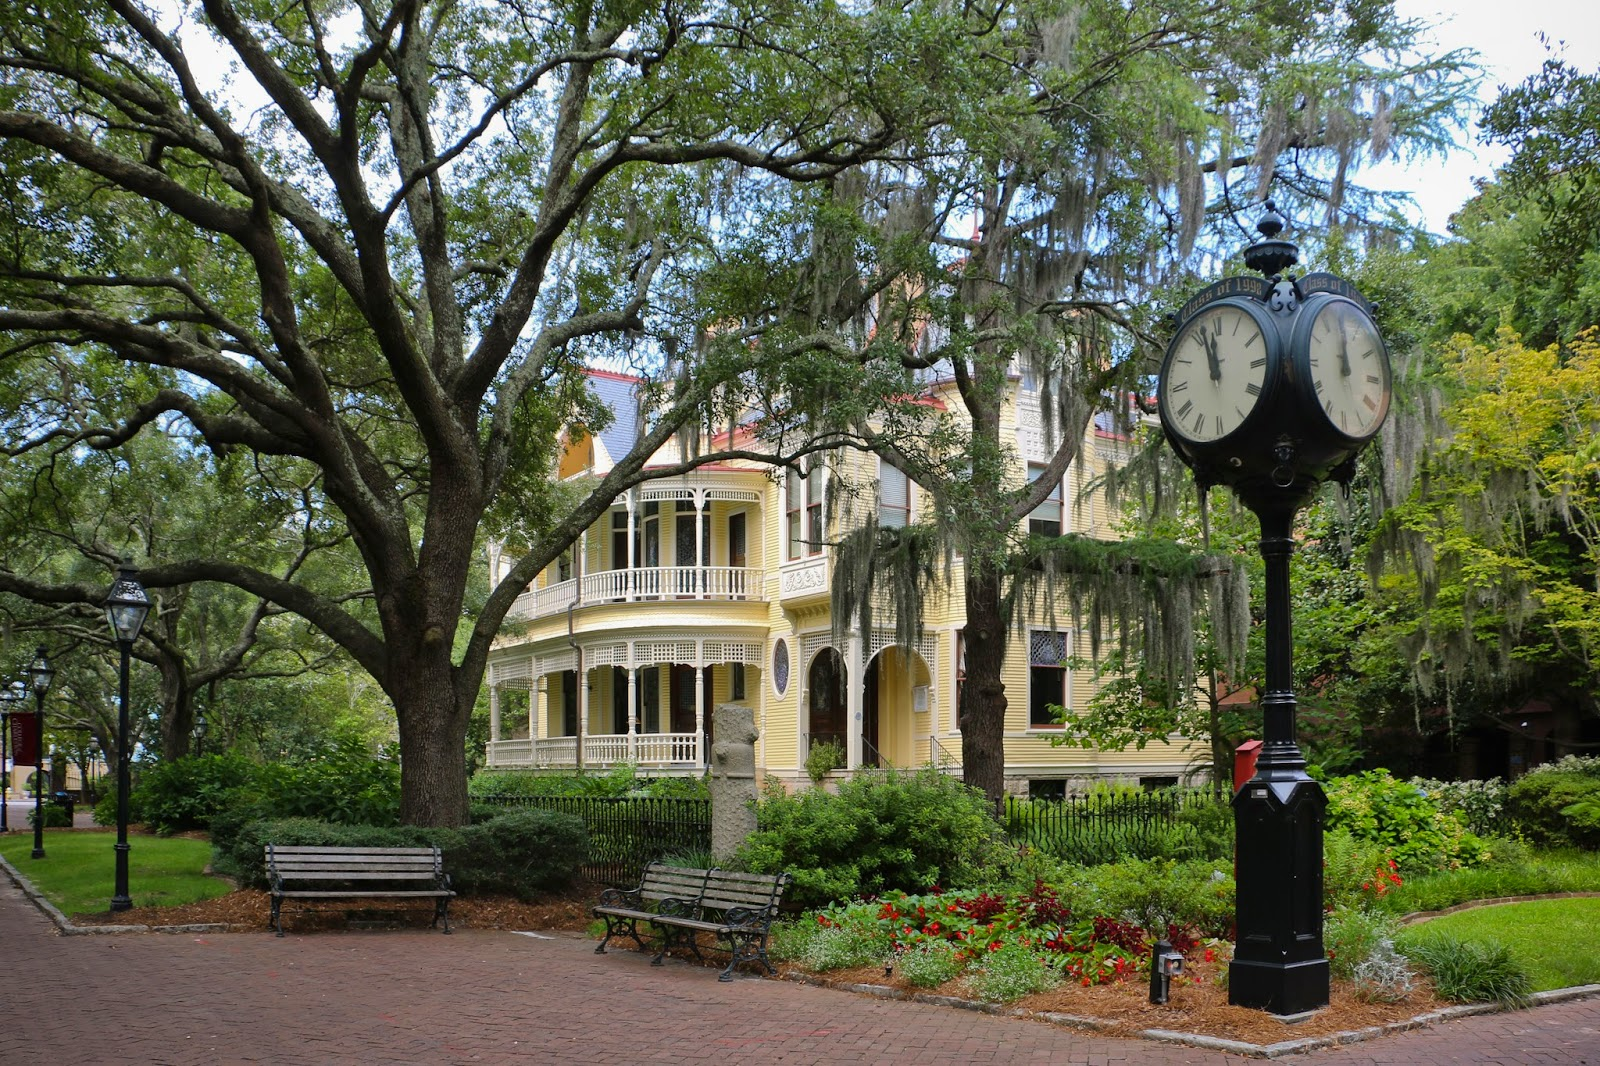 college of charleston student bucket list 50 things to do before graduation charleston daily. Black Bedroom Furniture Sets. Home Design Ideas